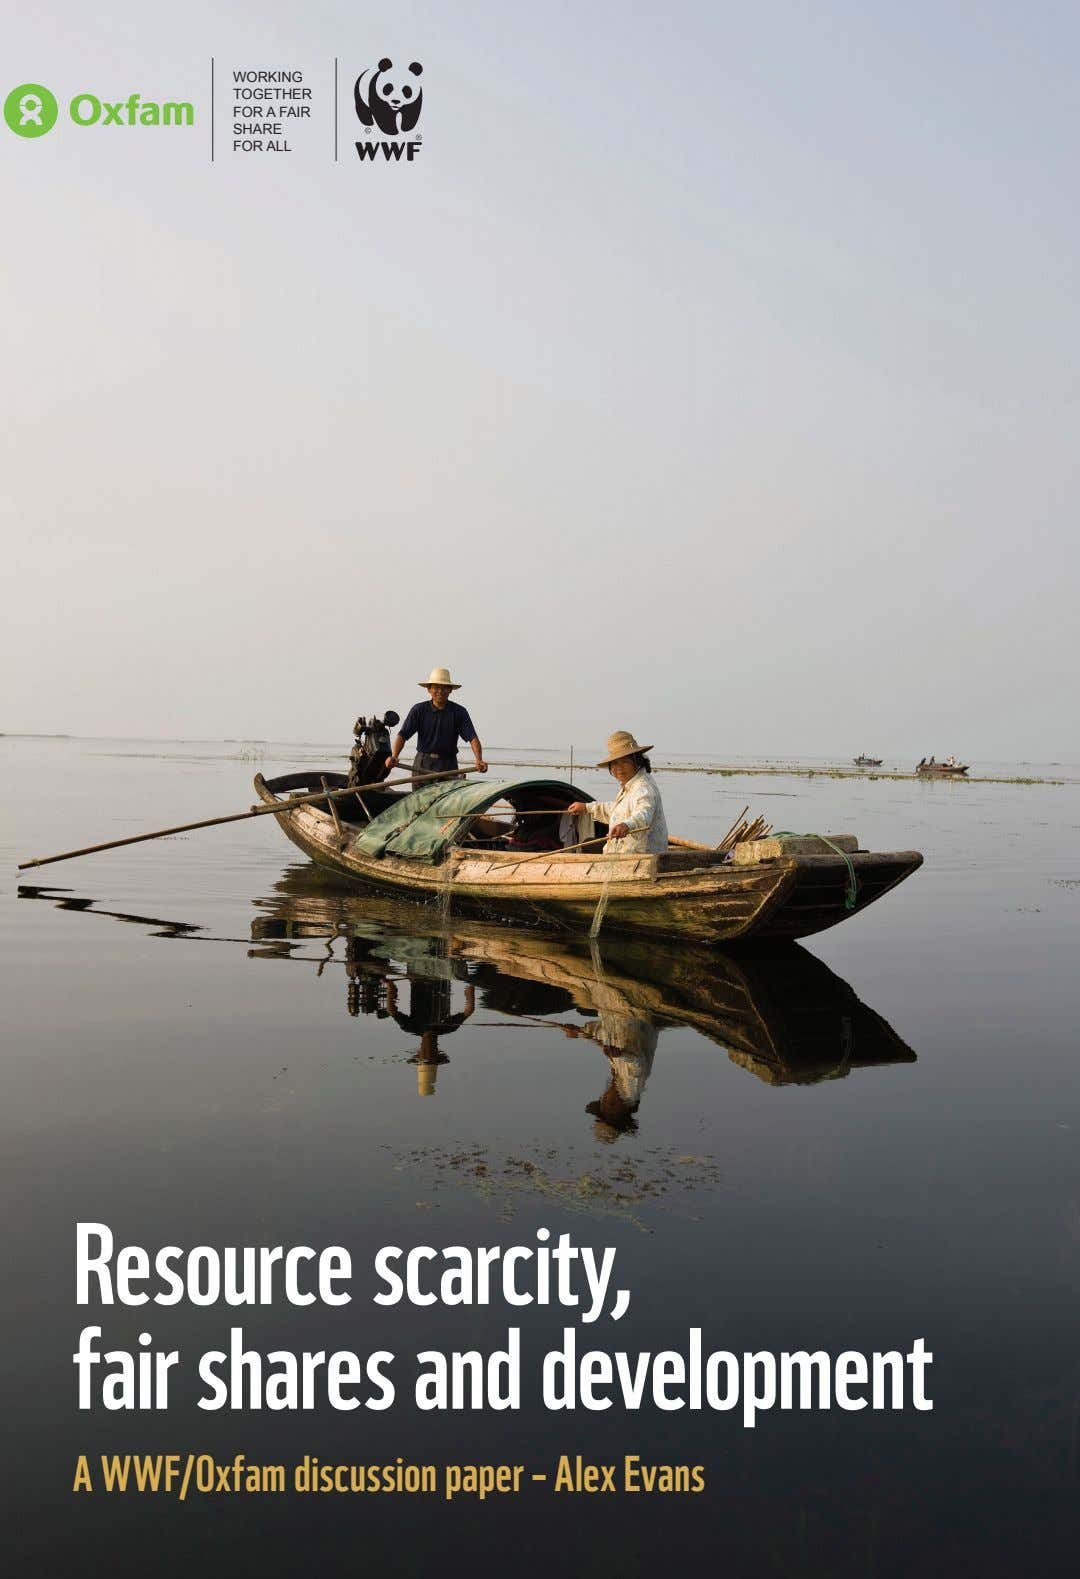 WORKING TOGETHER FOR A FAIR SHARE FOR ALL Resource scarcity, fair shares and development A WWF/Oxfam